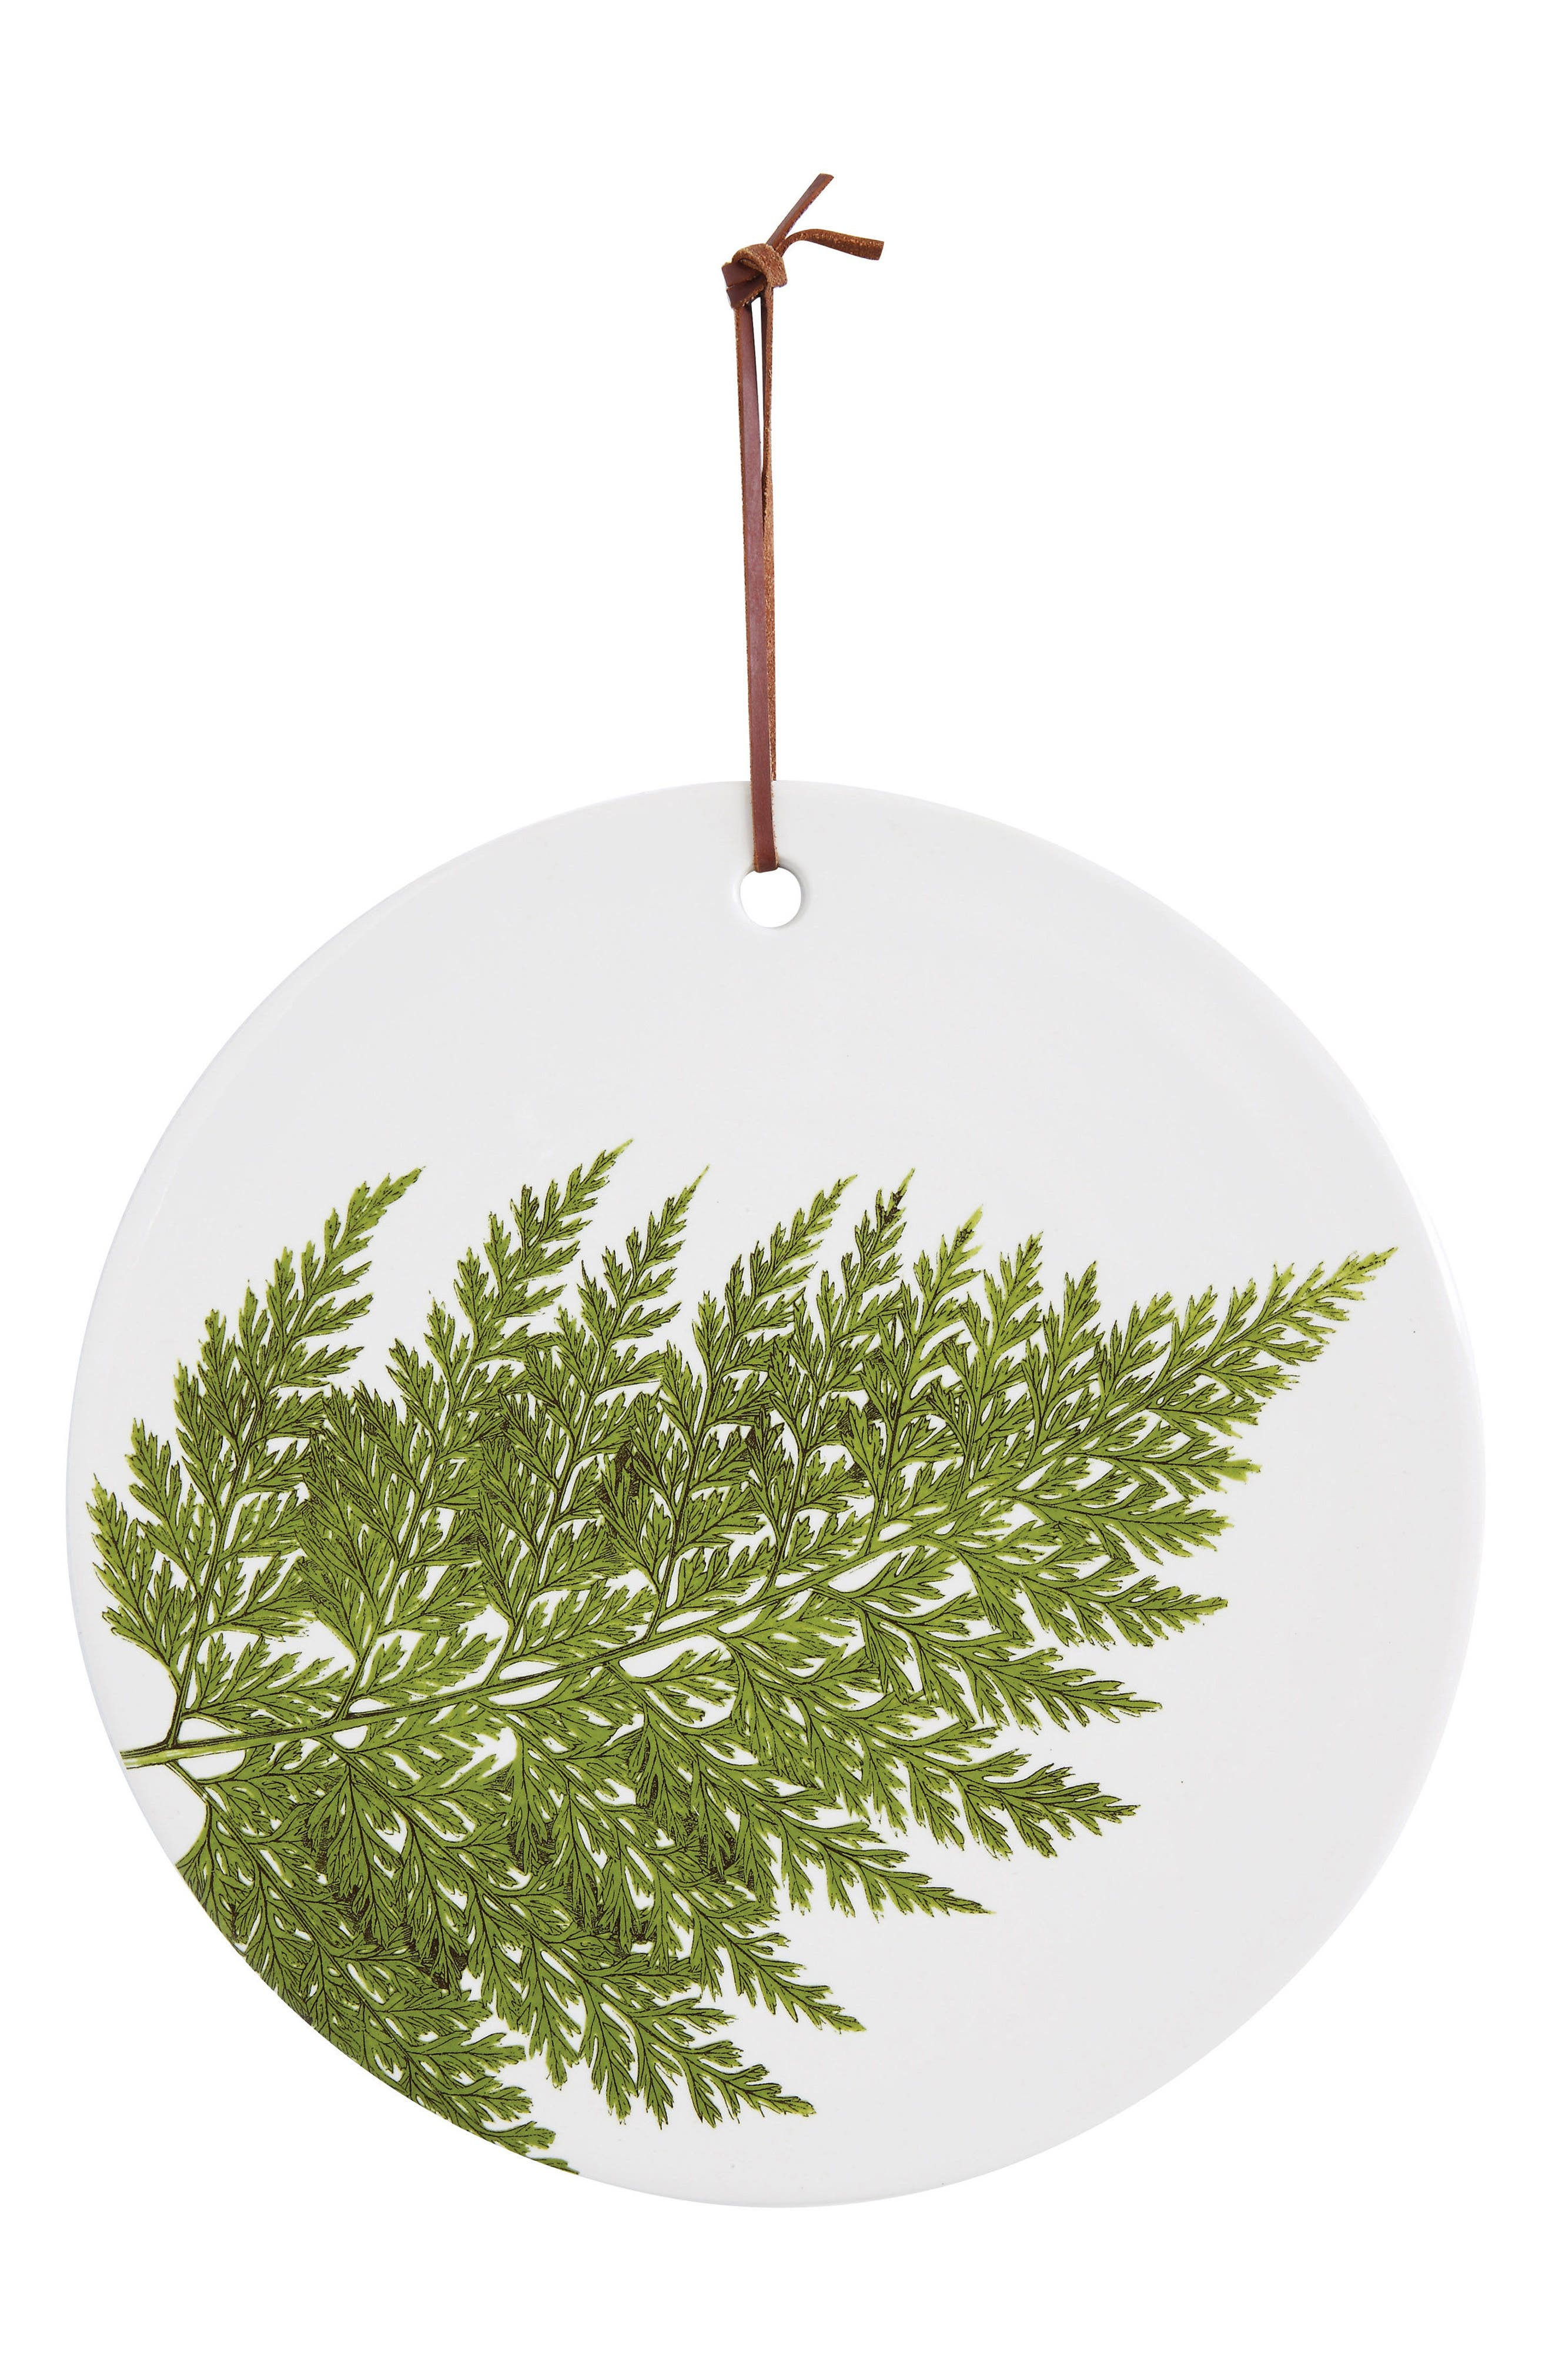 Fern Cheese Board,                         Main,                         color, Green